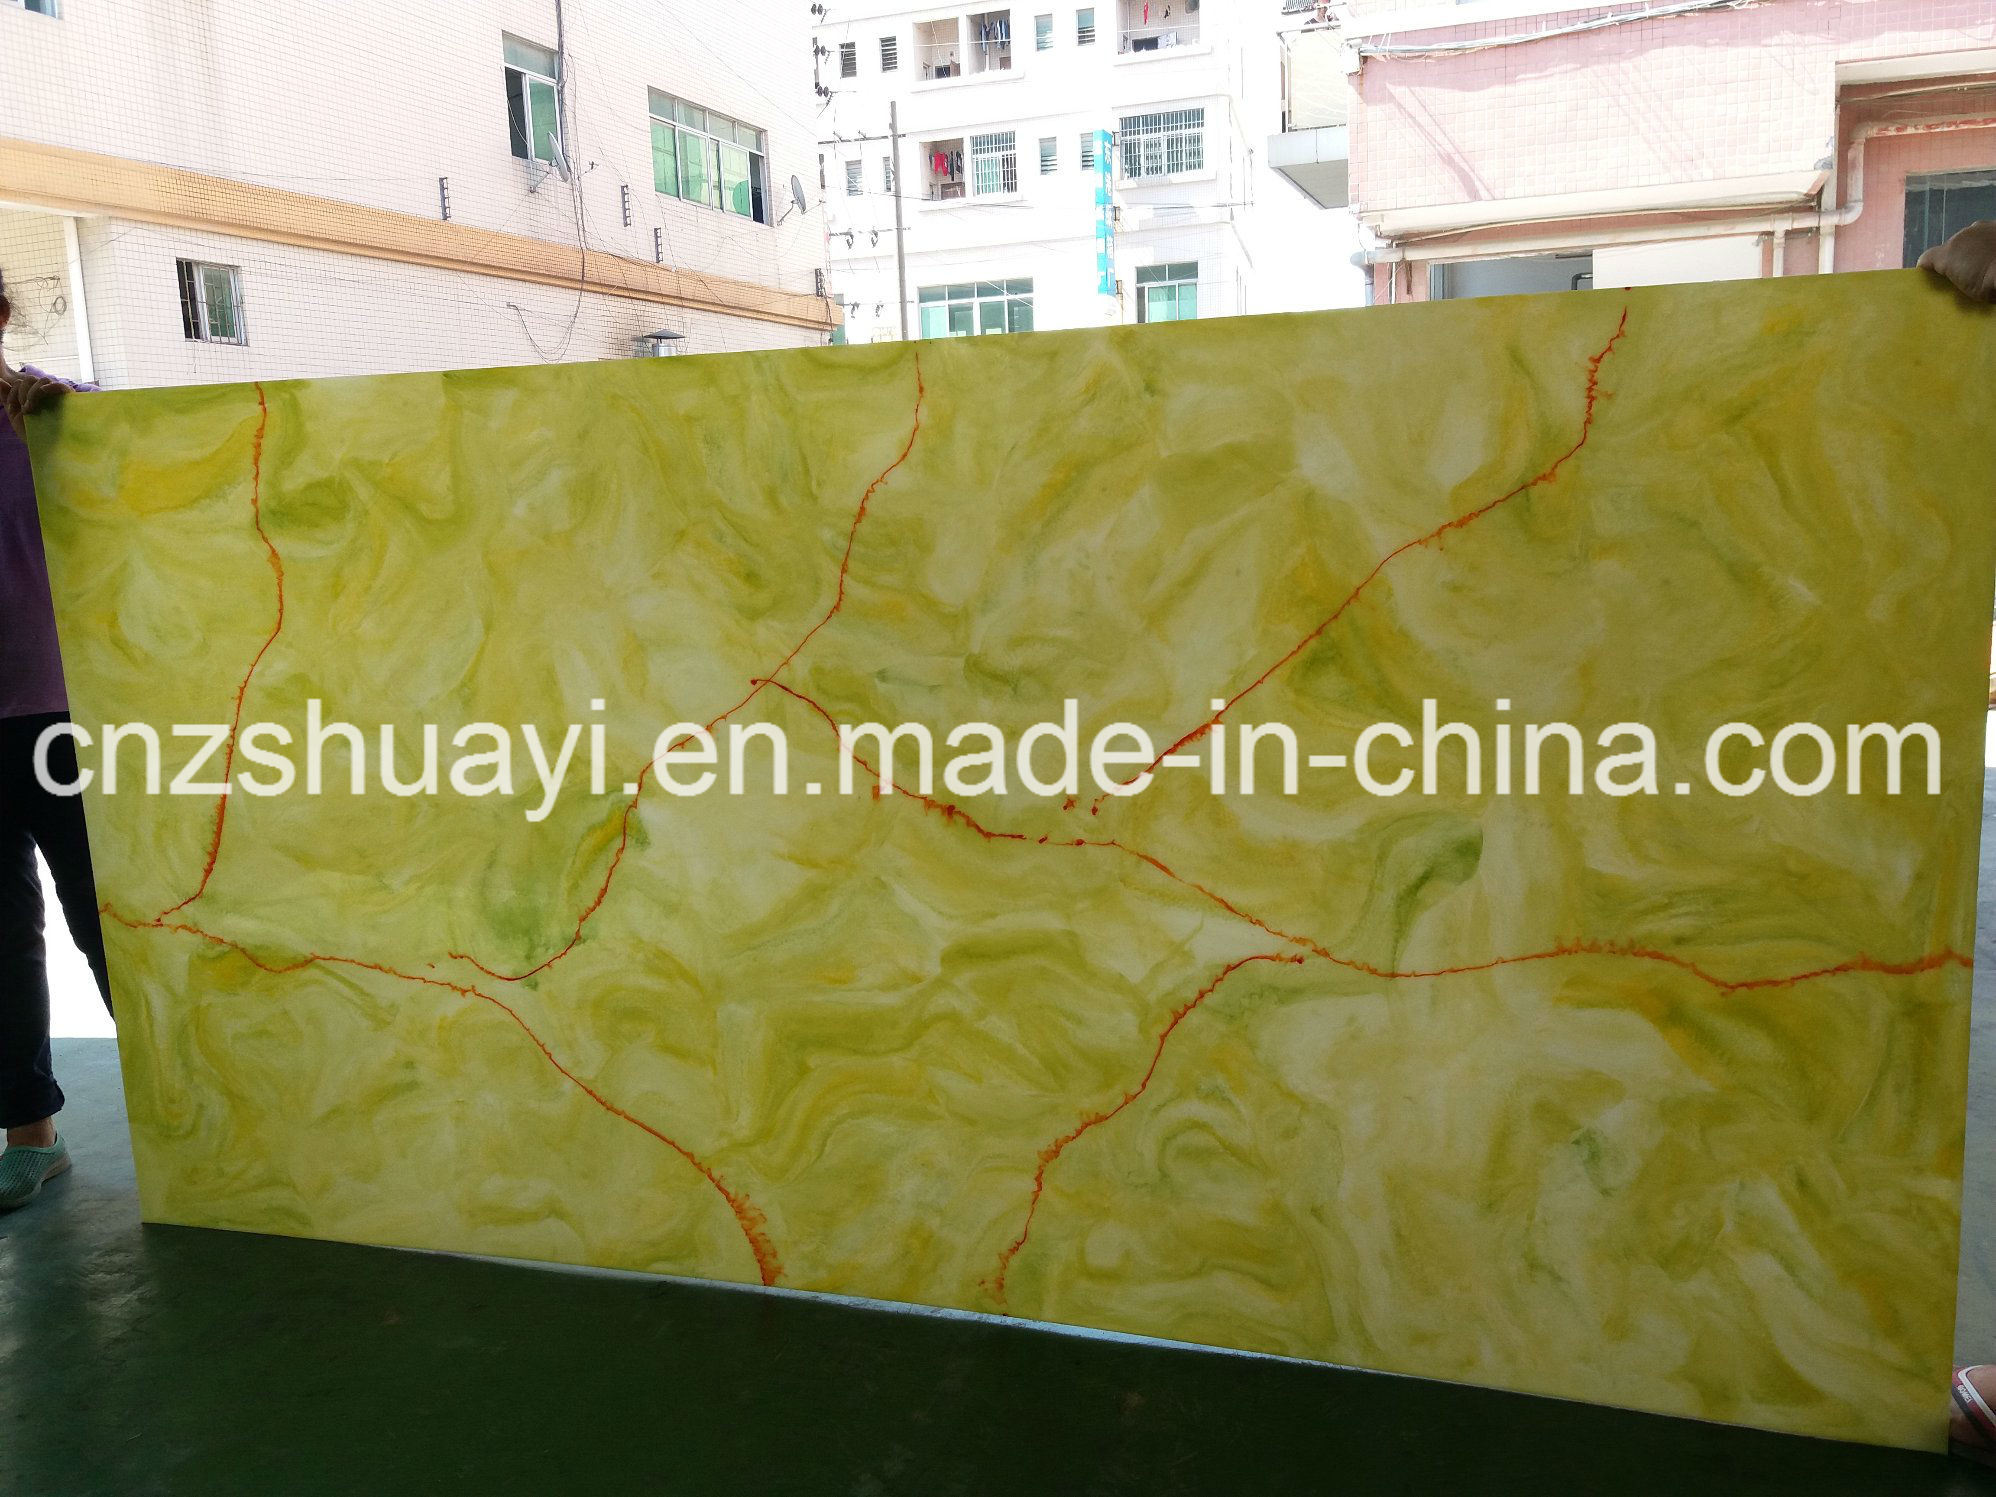 China Artificial Stone Slabs for Decorative Kitchen Wall Panels ...